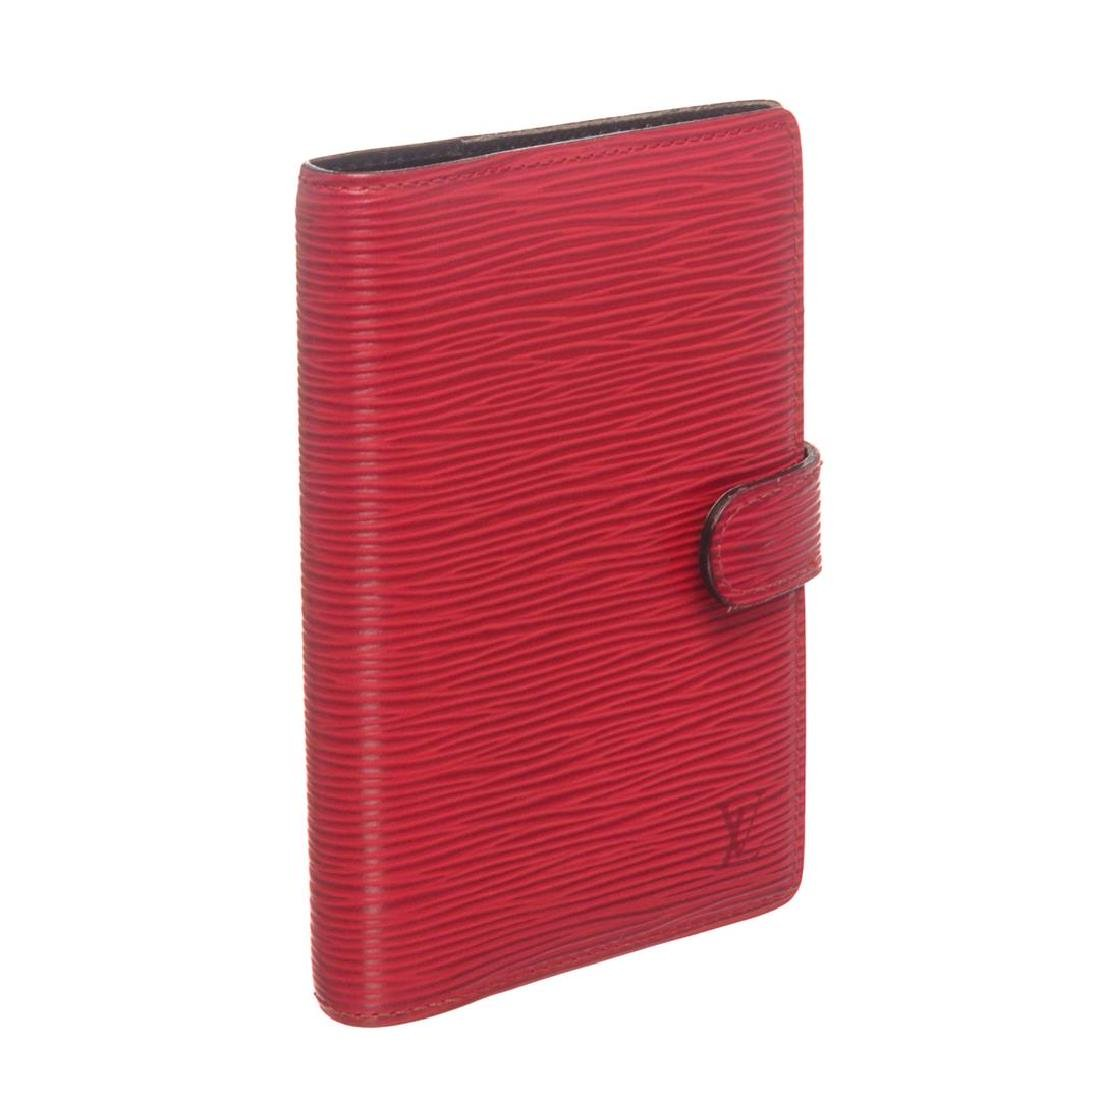 Louis Vuitton Red Epi Leather Small Ring Agenda Holder - 7